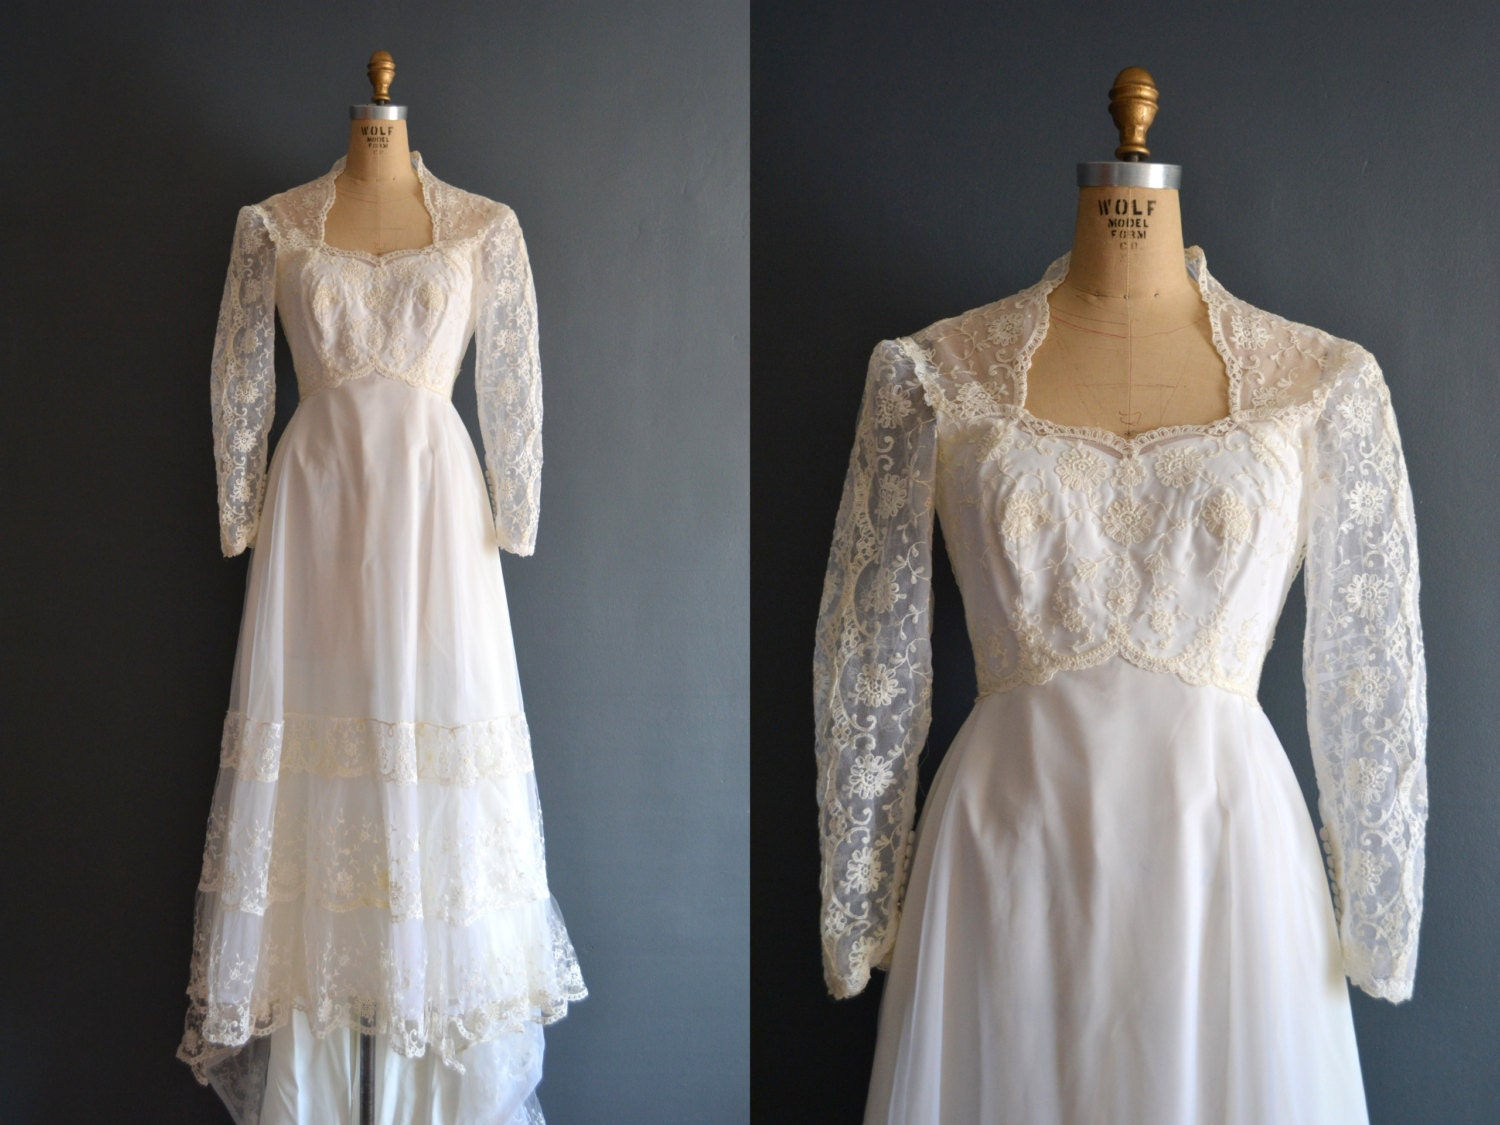 Sale 70s wedding dress 1970s wedding dress hadley for 1970s wedding dresses for sale